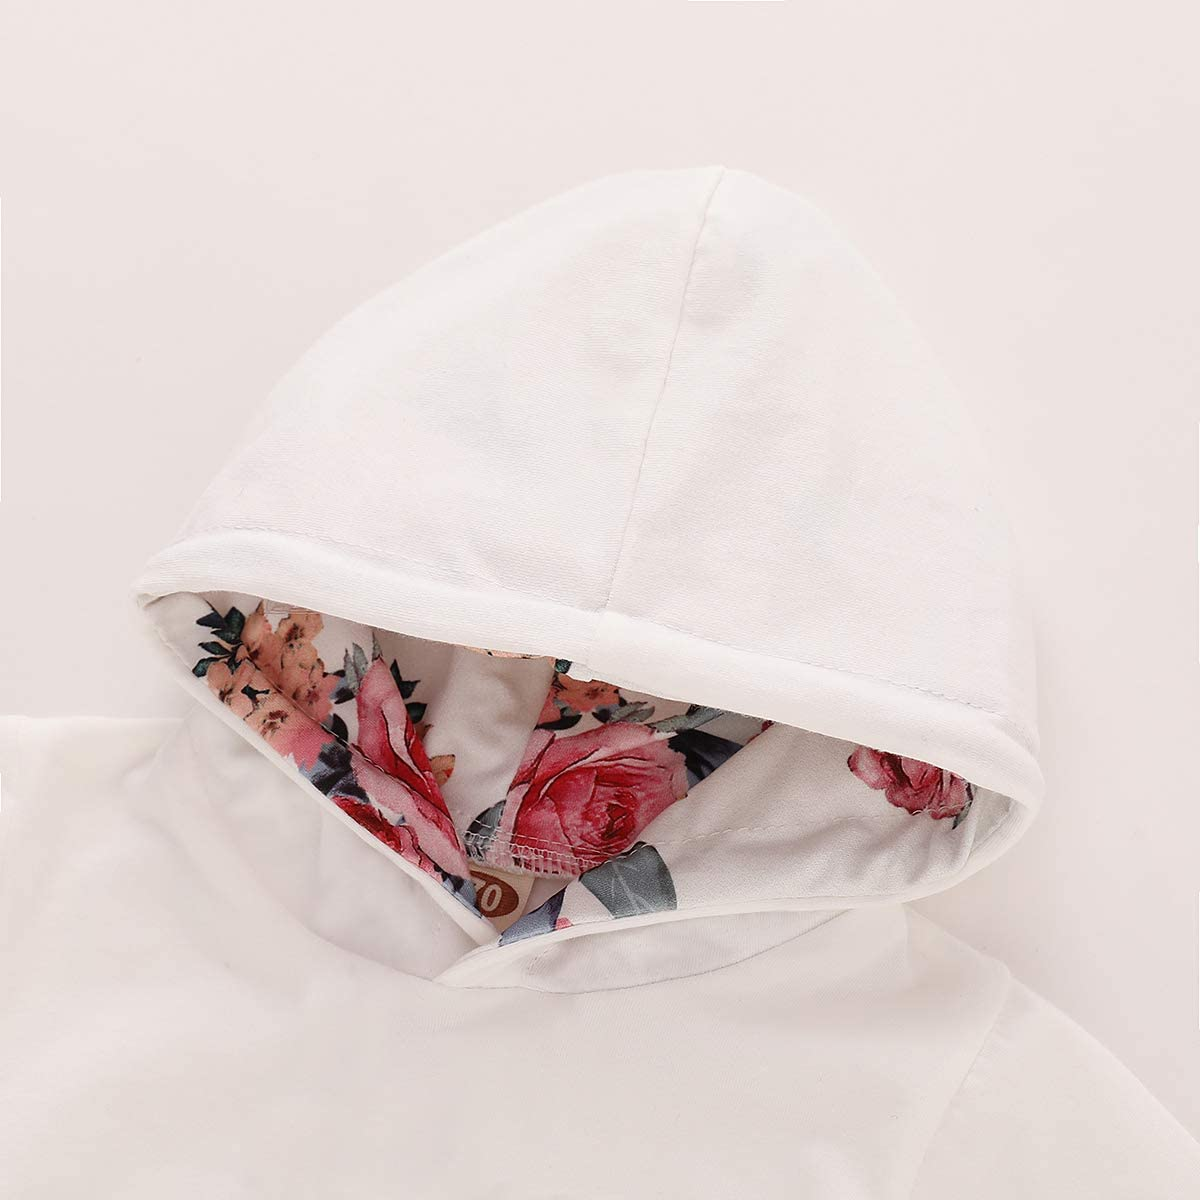 PICK YOUR LOOK Newborn Baby Girl Clothes Long Sleeve Floral Printed Hoodie Outfit Sweatshirt Headband Pocket Clothes Sets Trouser Outfits